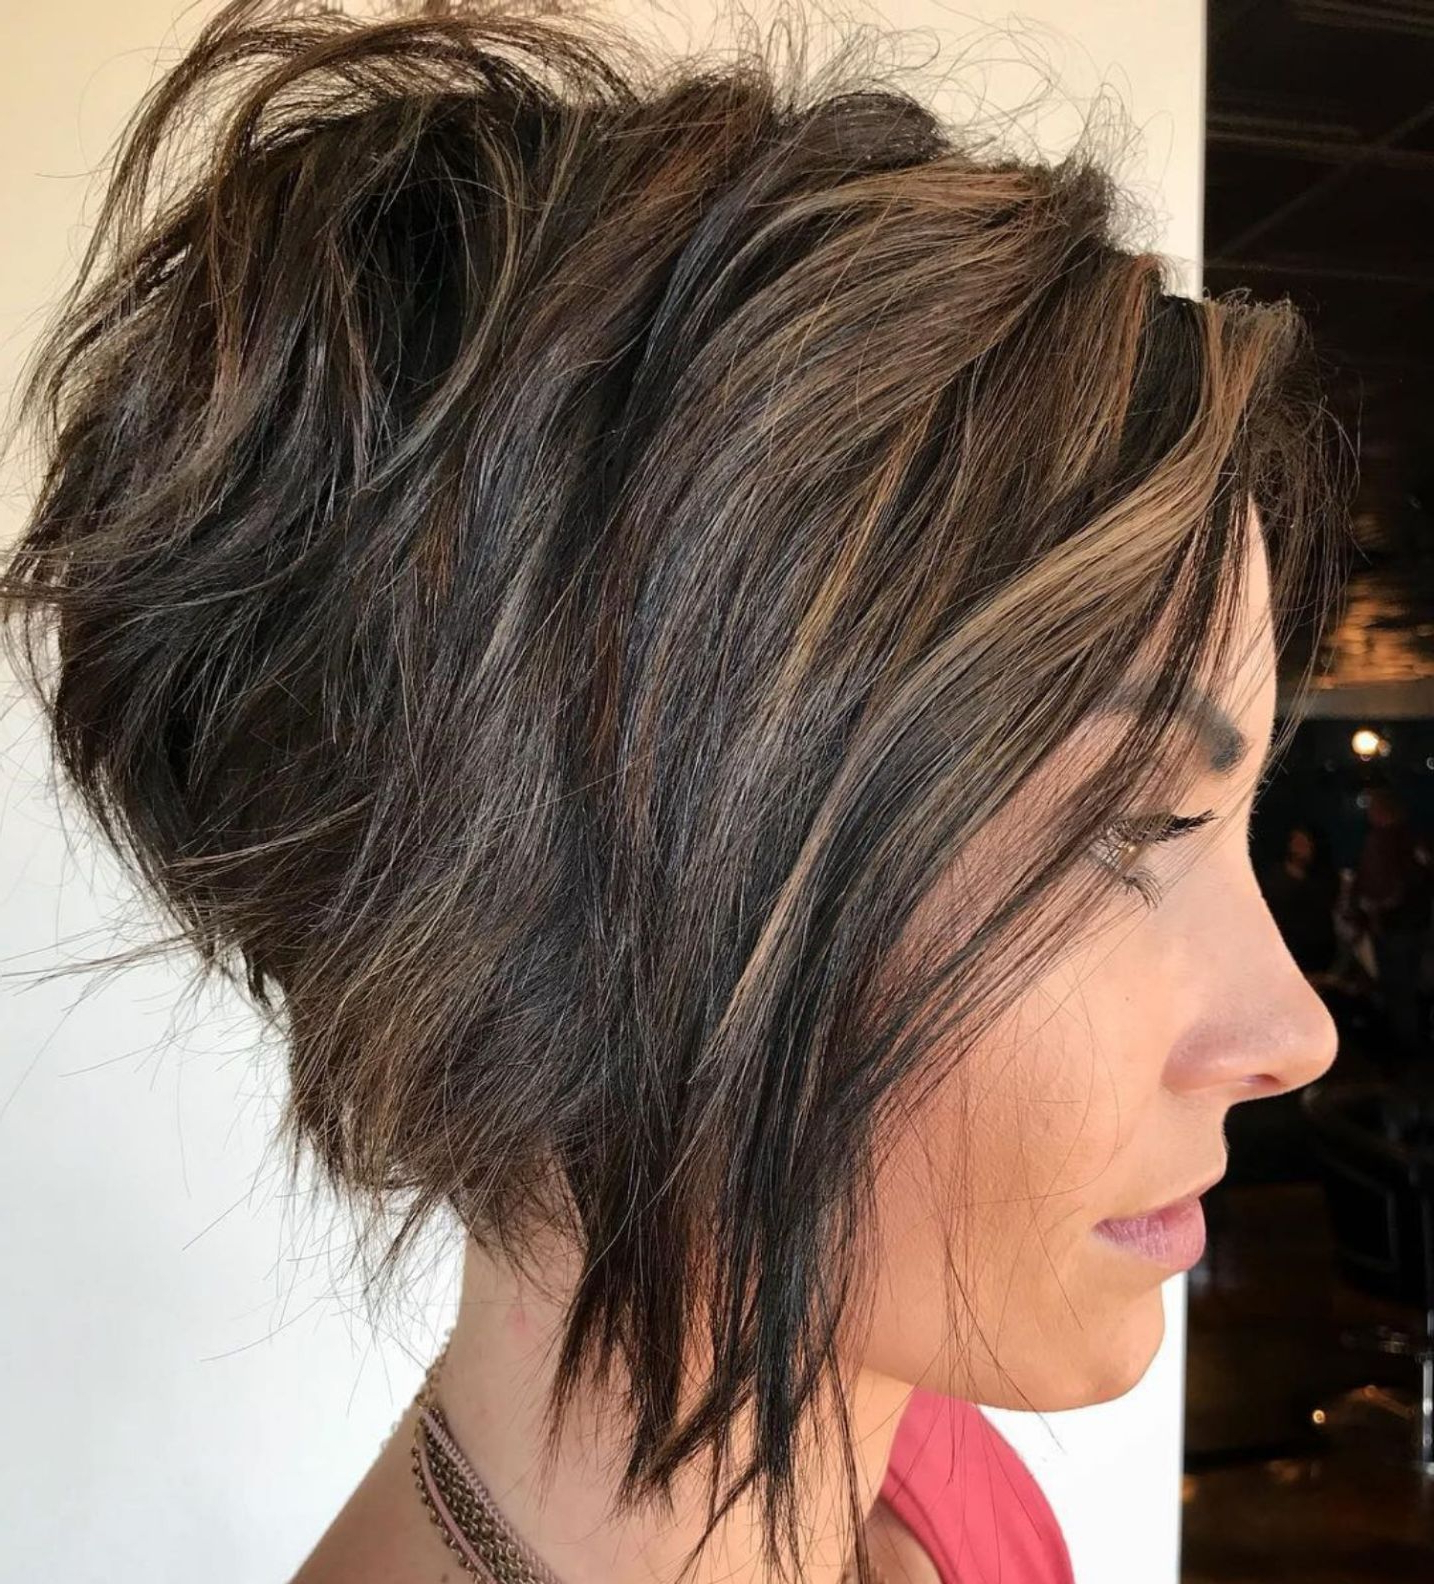 60 Layered Bob Styles: Modern Haircuts With Layers For Any Occasion Throughout Razored Pixie Bob Haircuts With Irregular Layers (View 16 of 20)